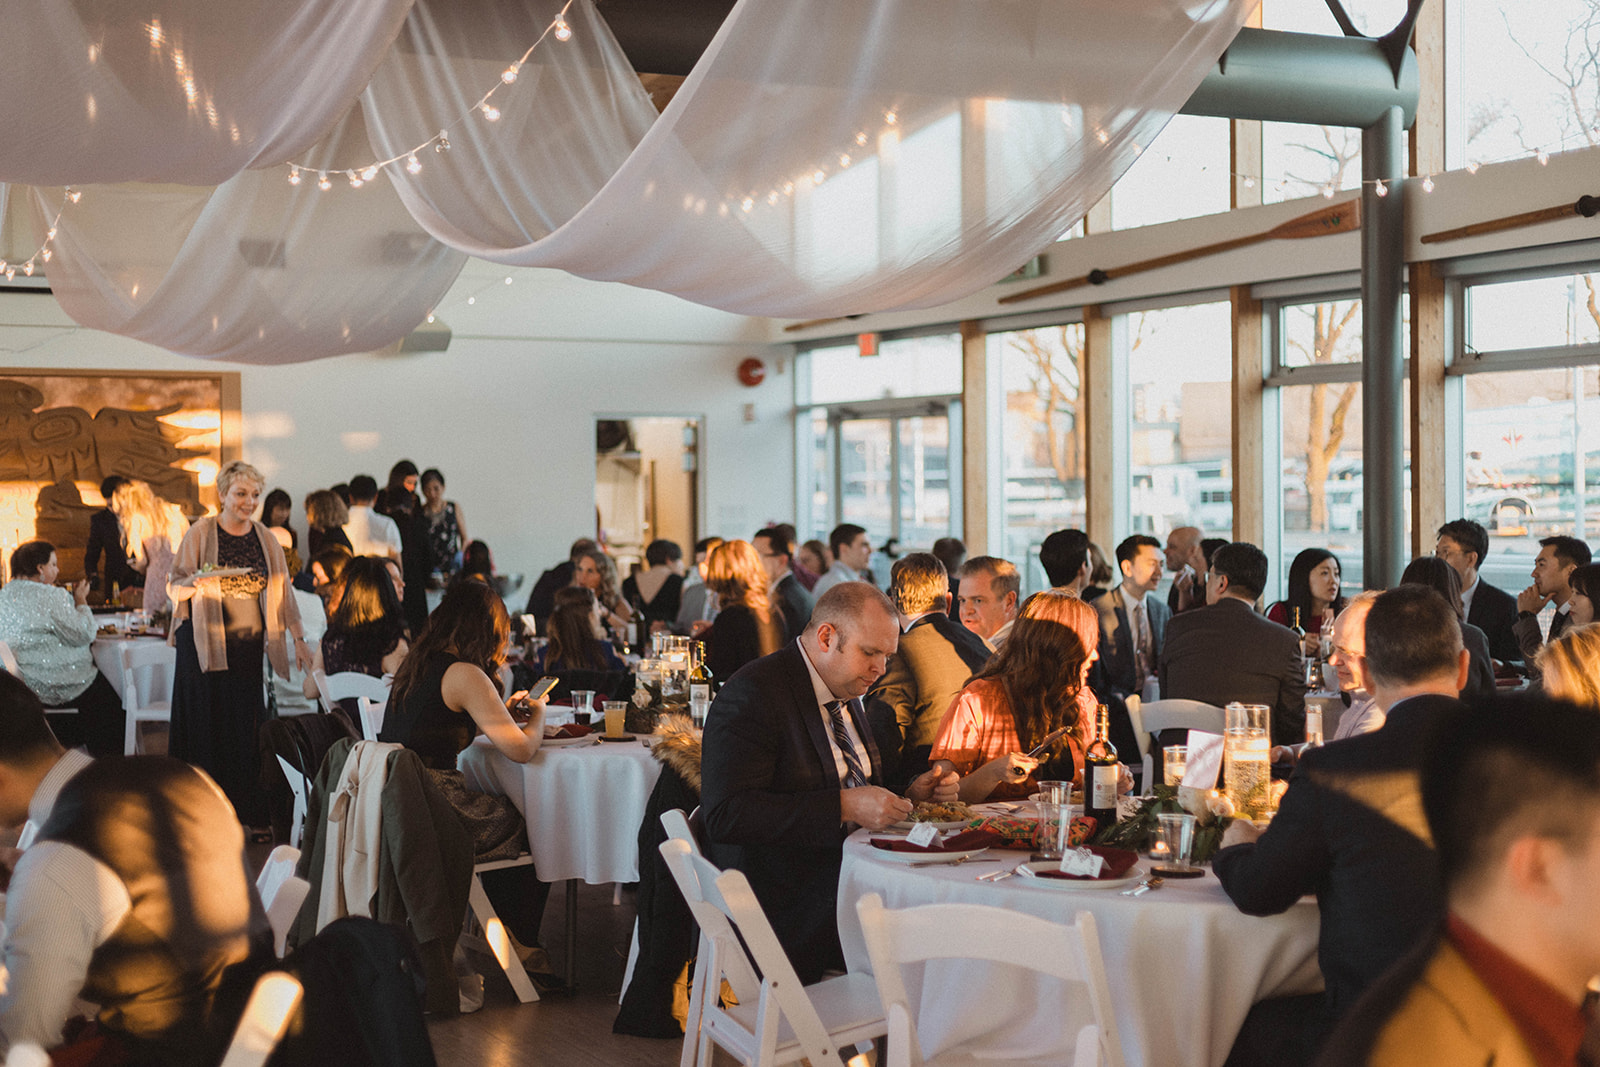 UBC Boathouse Wedding Reception guest sit below white fabric ceiling treatment by Proline International Trading Vancouver